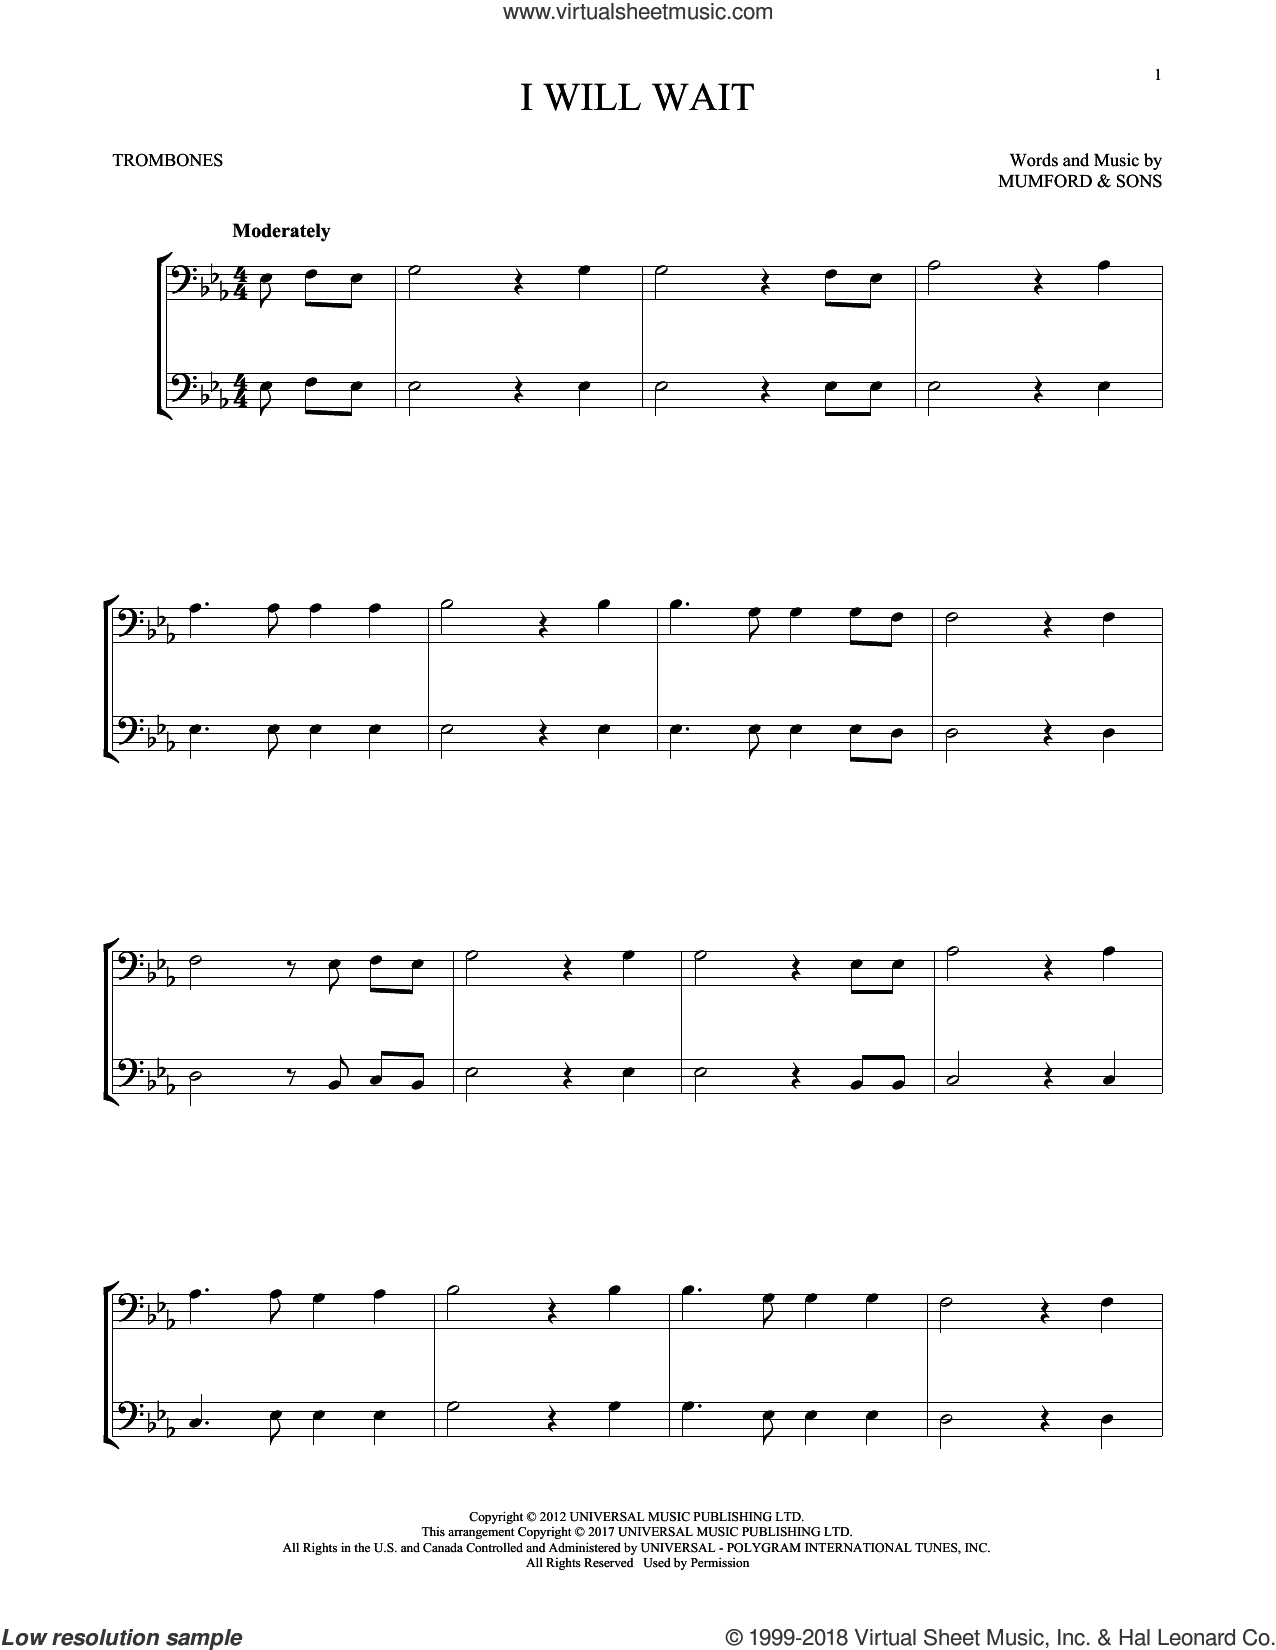 I Will Wait sheet music for two trombones (duet, duets) by Mumford & Sons, intermediate skill level